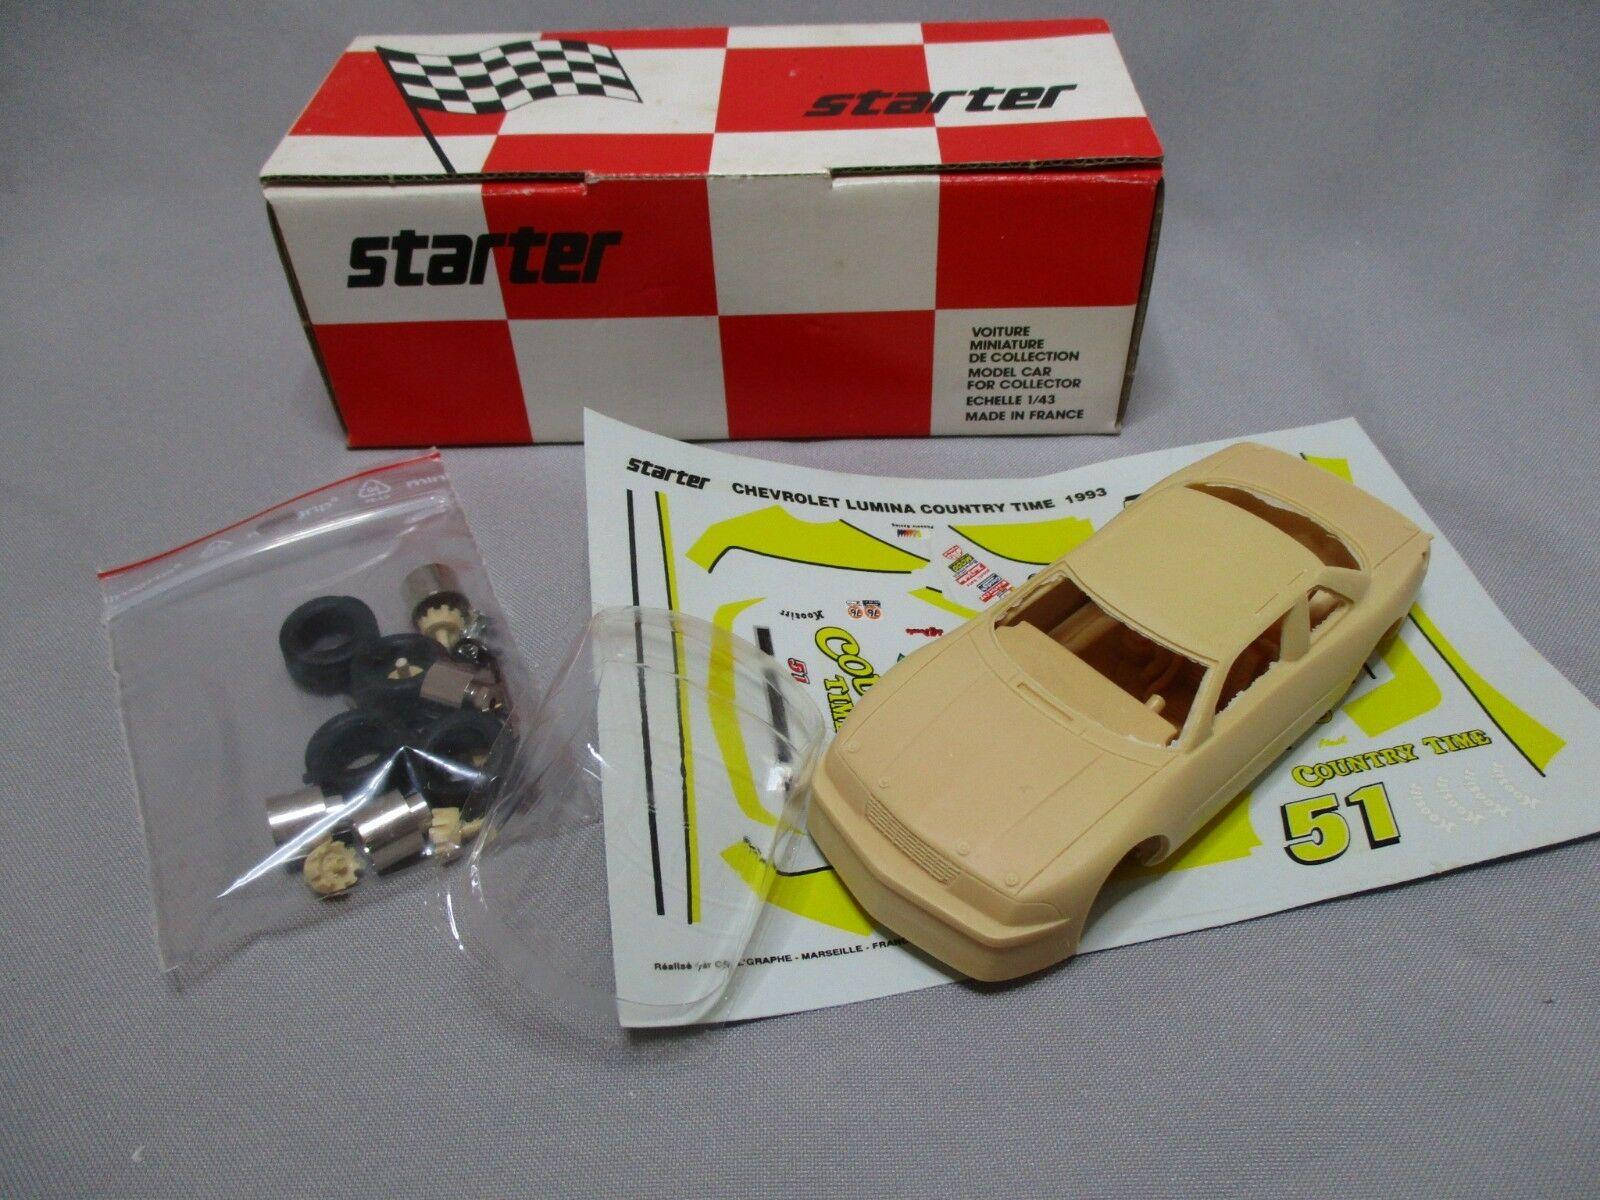 AI332 STARTER 1 43 CHEVROLET LUMINA COUNTRY TIME 1994 CHE047 KIT RESINE A MONTER